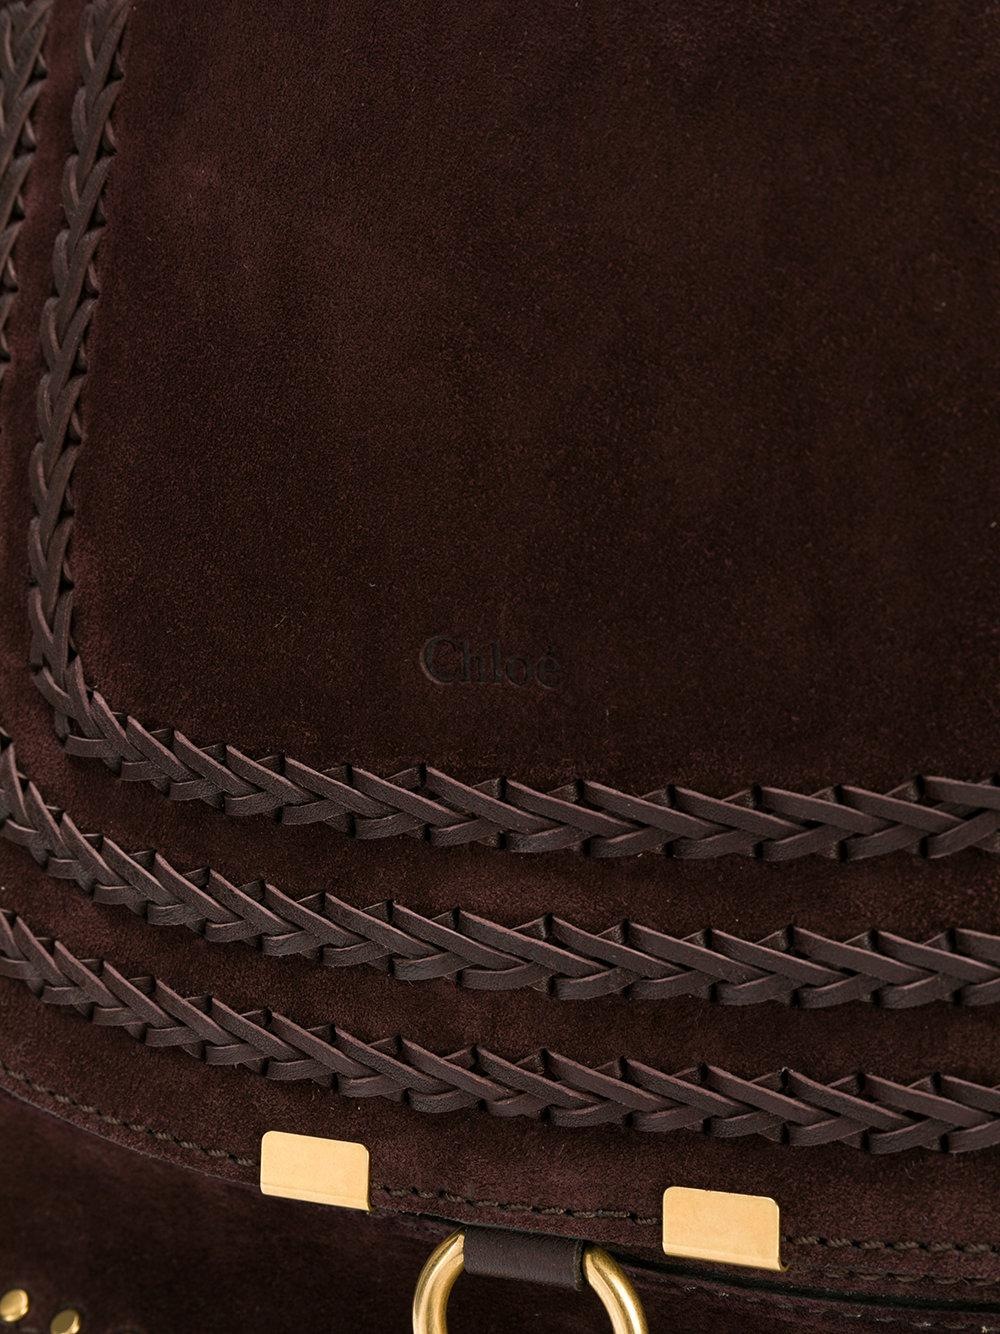 Chloé Leather Marcie Tote Bag in Brown